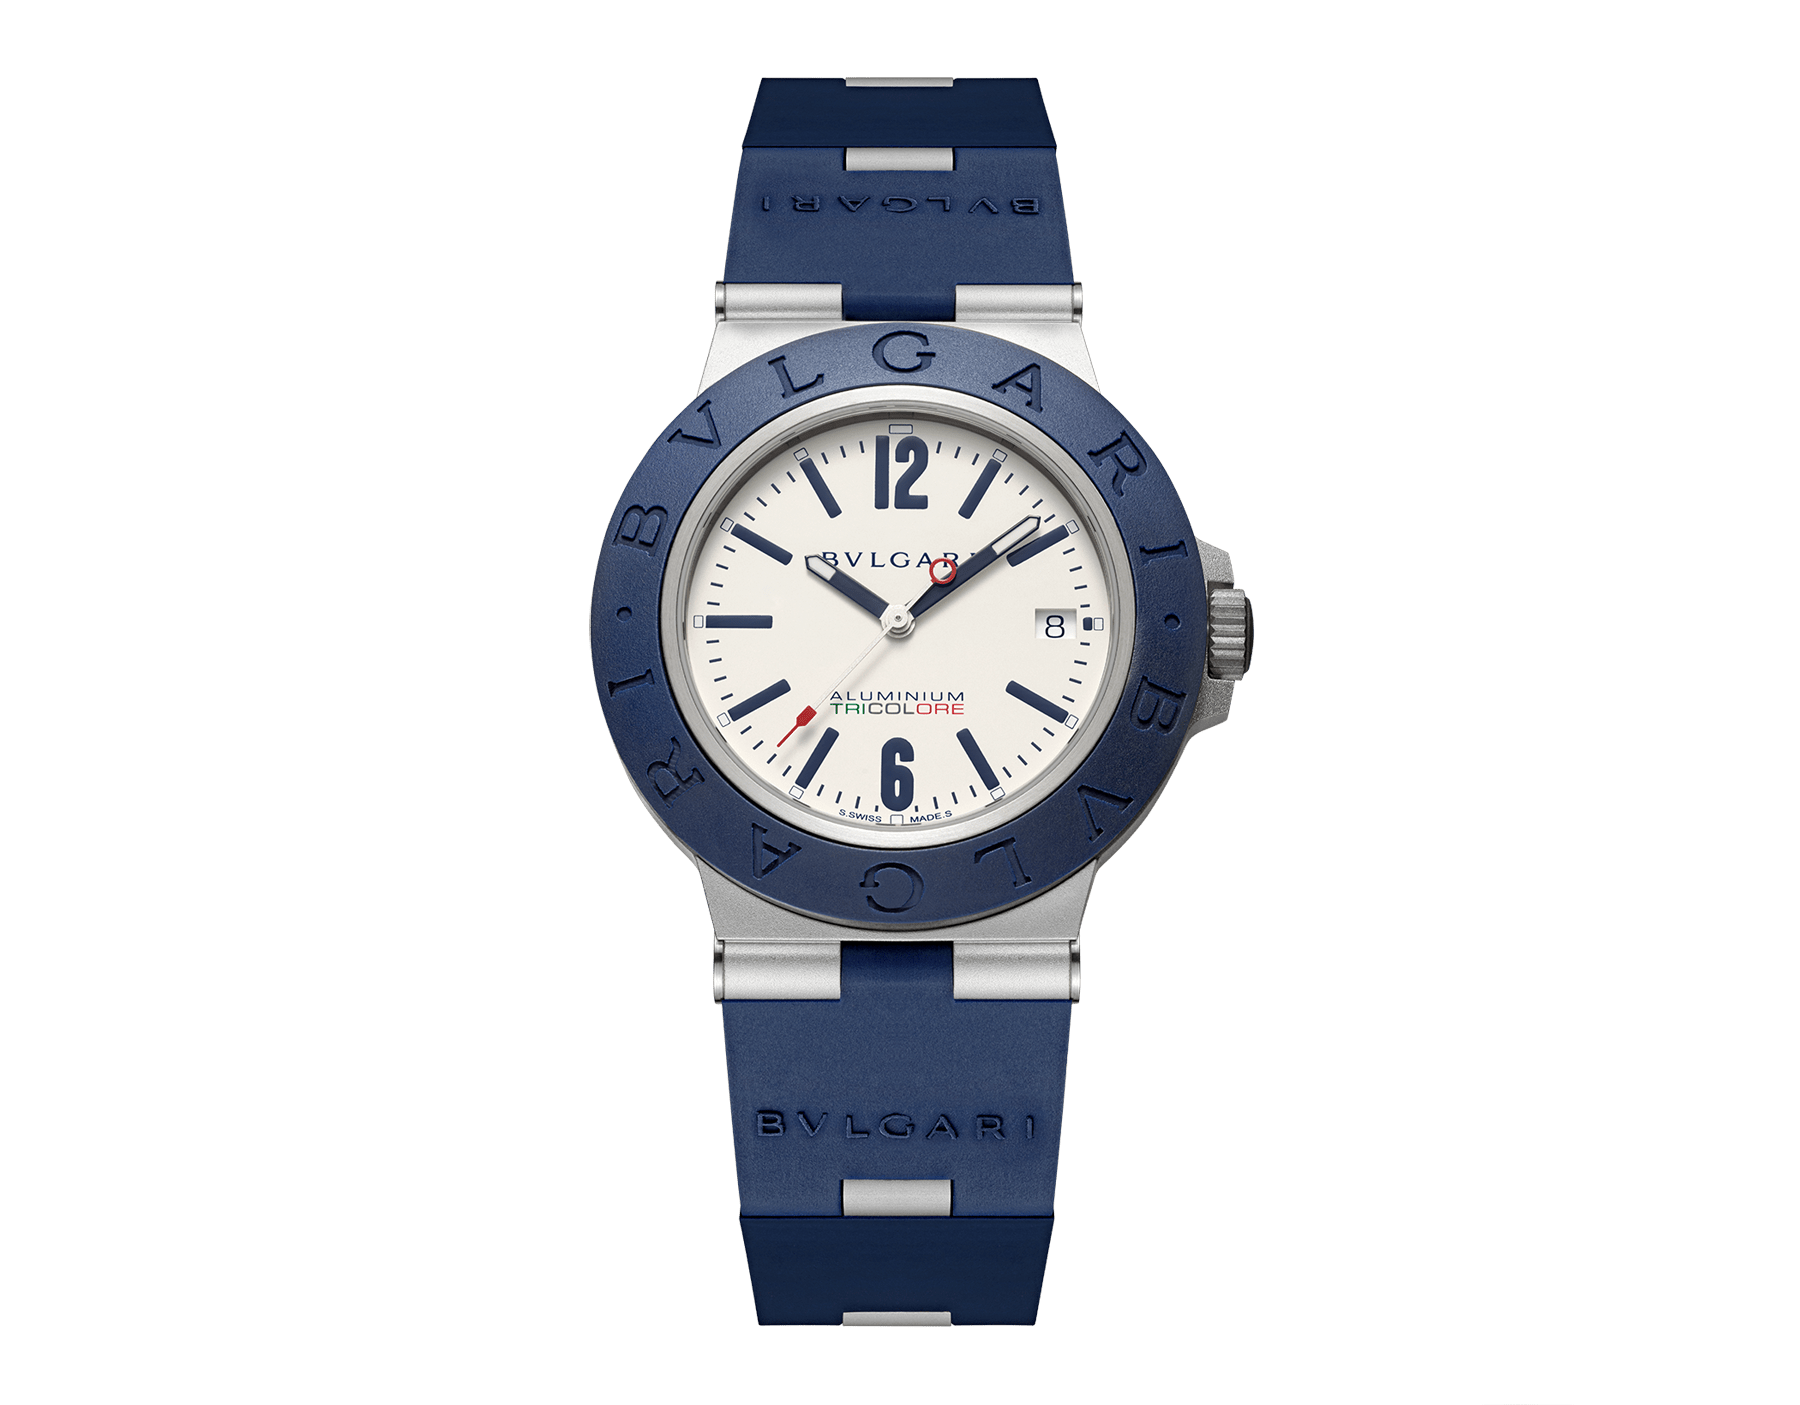 Bvlgari Aluminium Tricolore watch with mechanical movement, automatic winding and date, 40 mm aluminium and titanium case, blue rubber bezel with BVLGARI BVLGARI engraving, warm grey dial with special TRICOLORE logo, and blue rubber bracelet. Water-resistant up to 100 metres. Limited Edition 103514 image 1